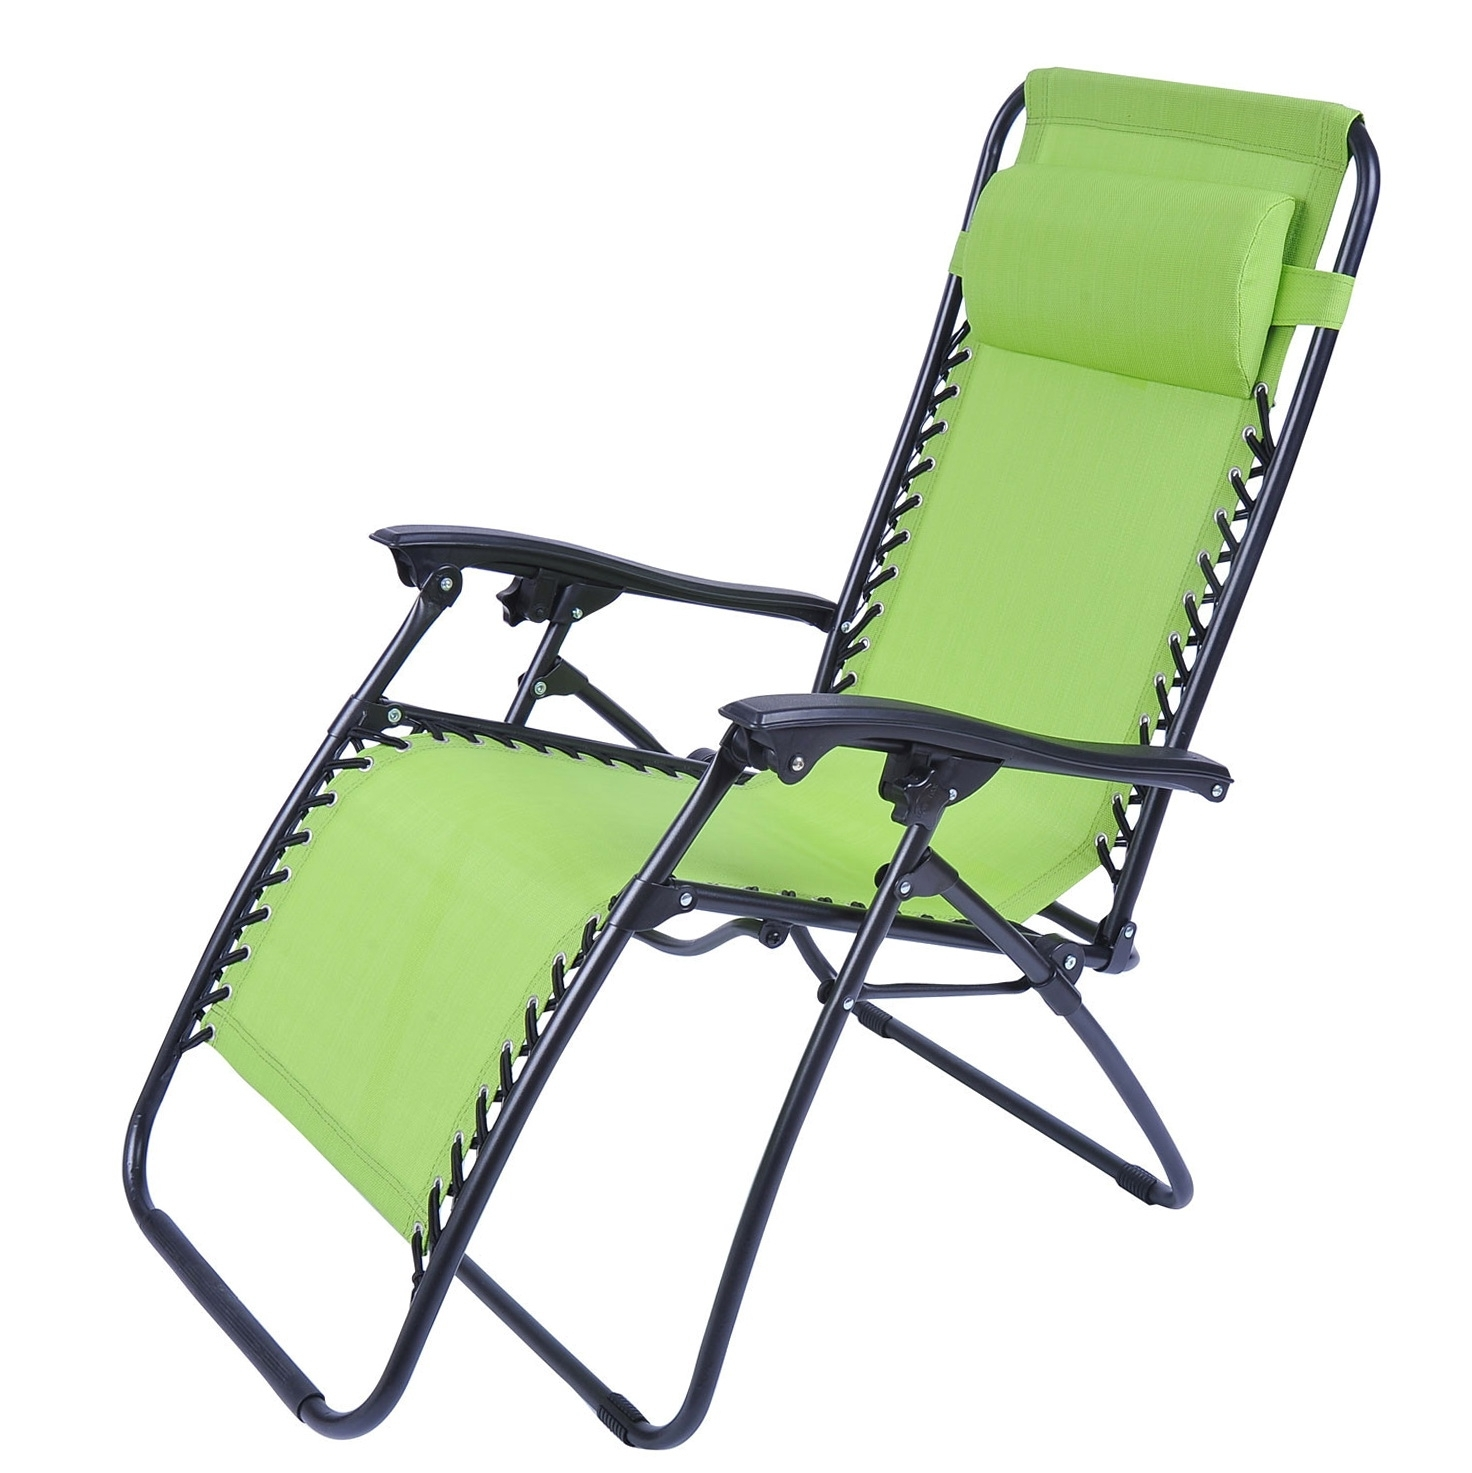 Folding Chaise Lounge Chair Patio Outdoor Pool Beach Lawn Recliner Pertaining To Newest Folding Chaise Lounge Chairs For Outdoor (View 3 of 15)